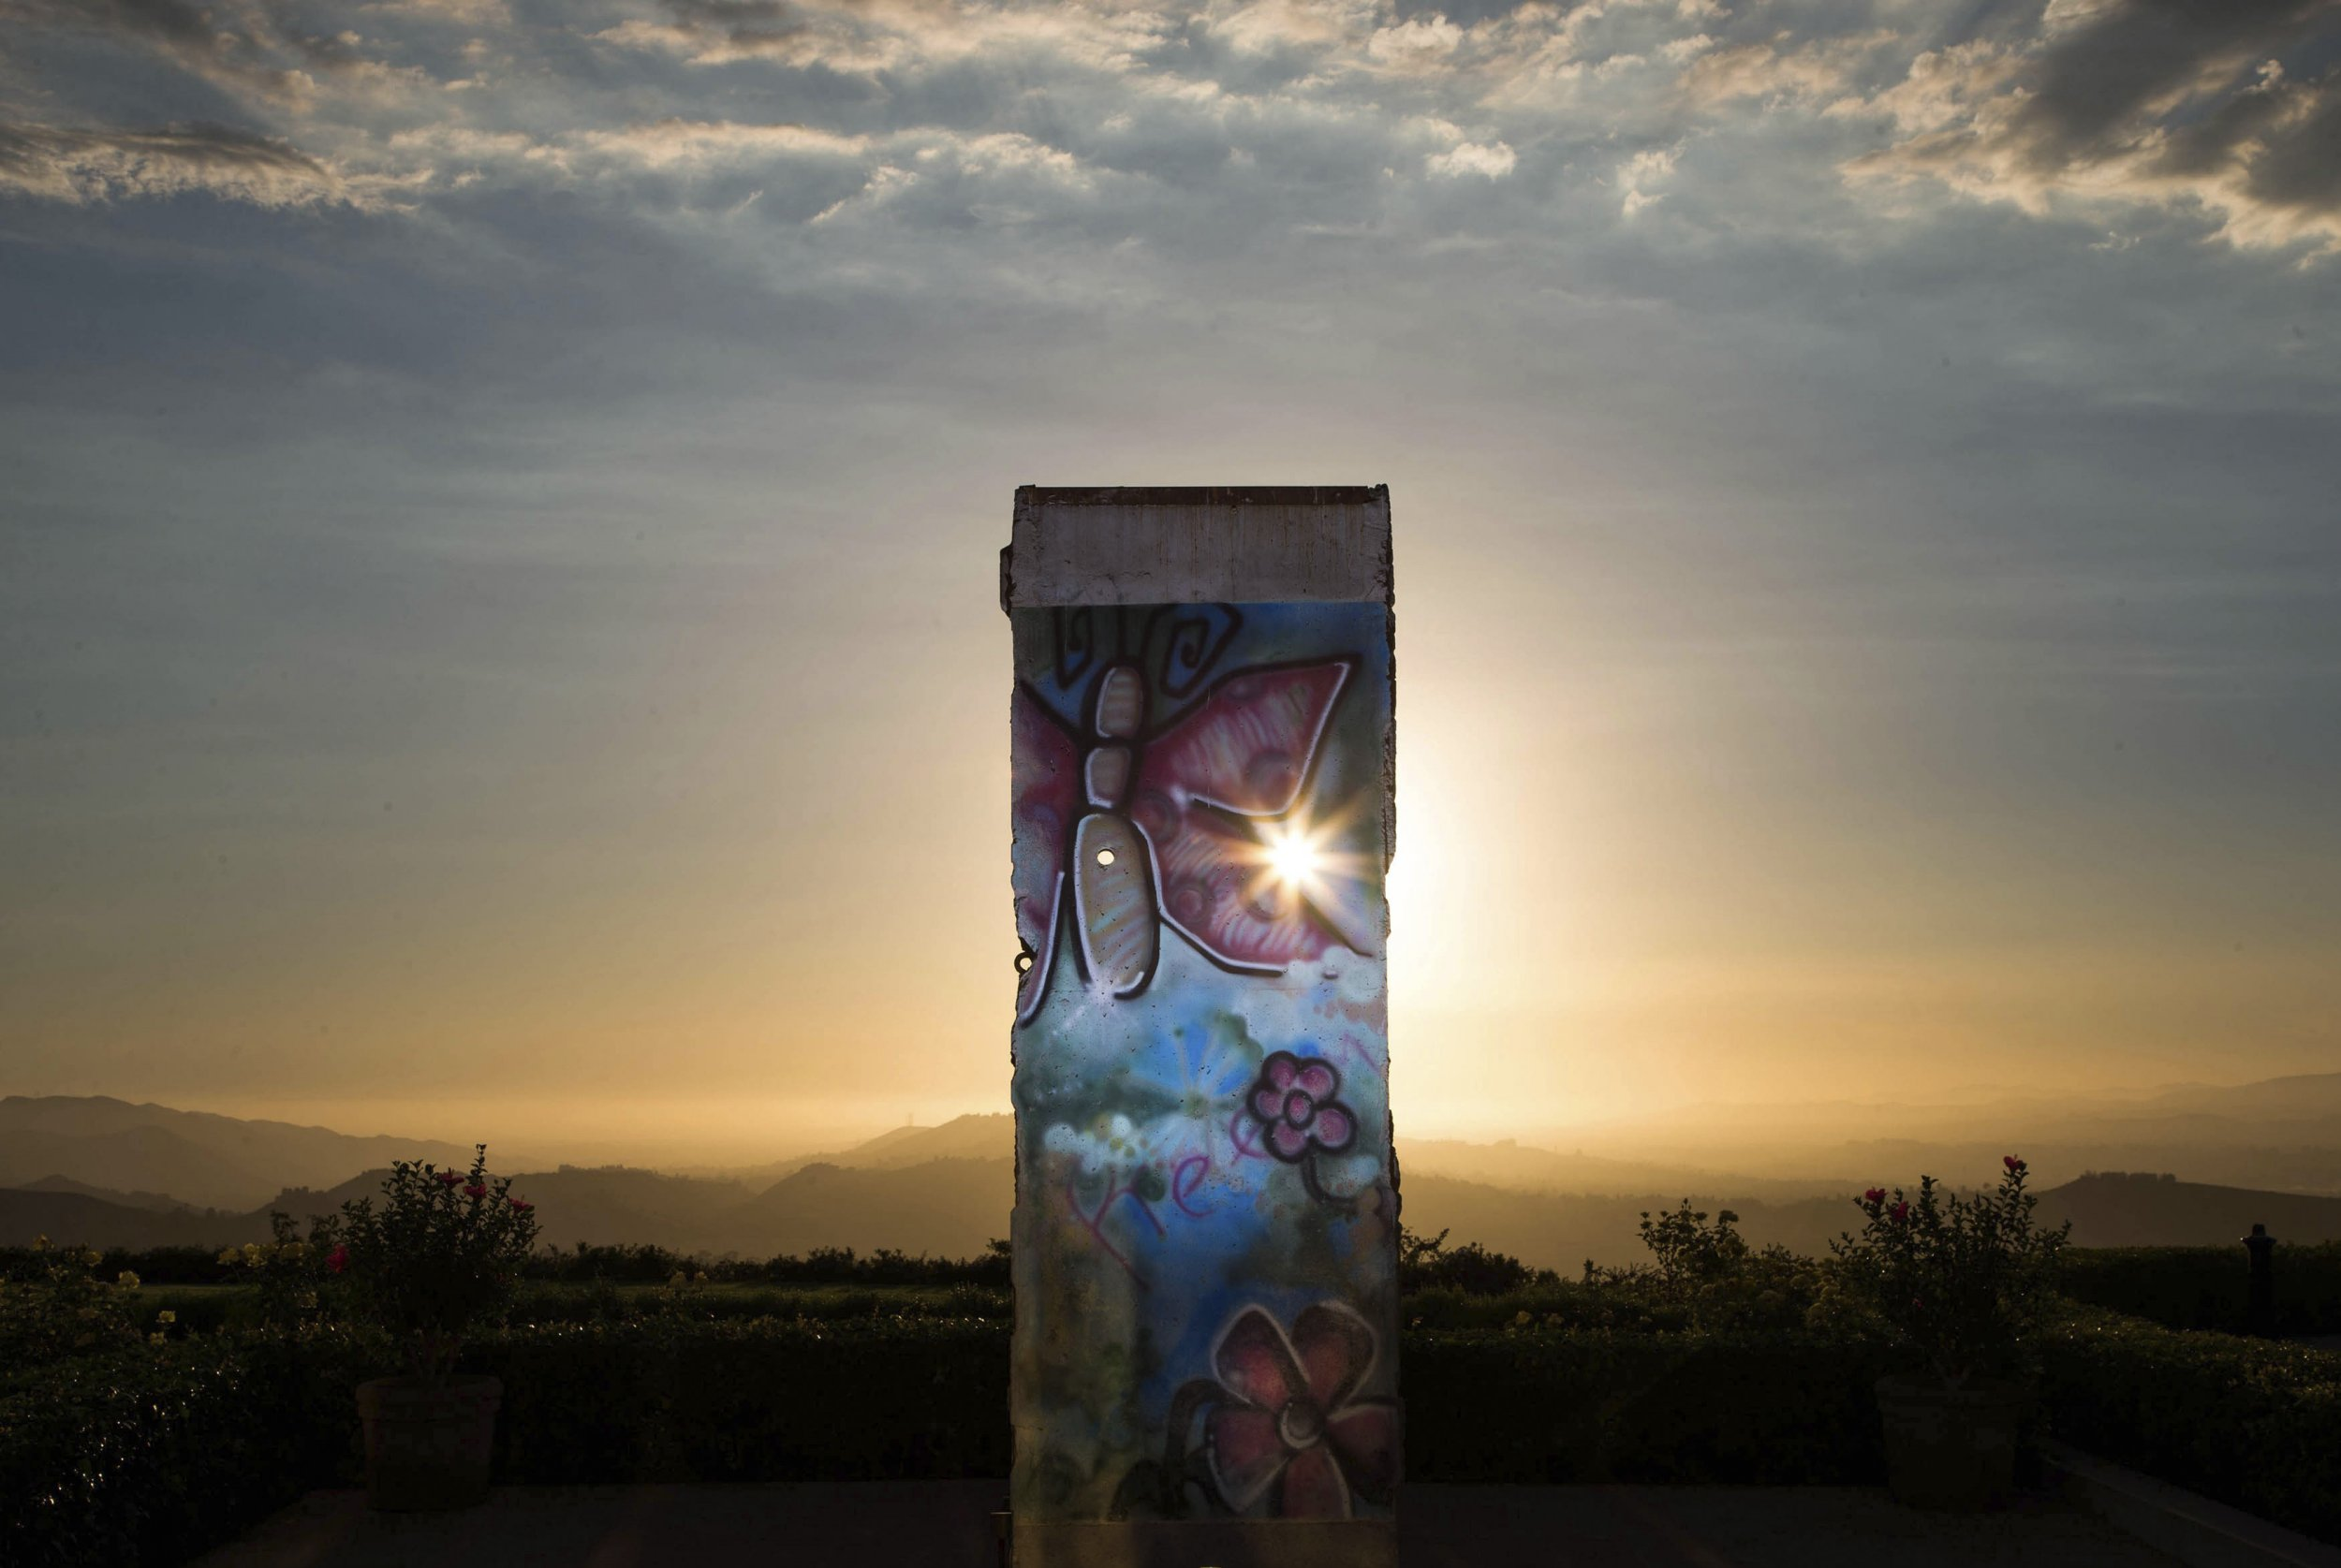 11-10-14 Berlin Wall Reagan Library